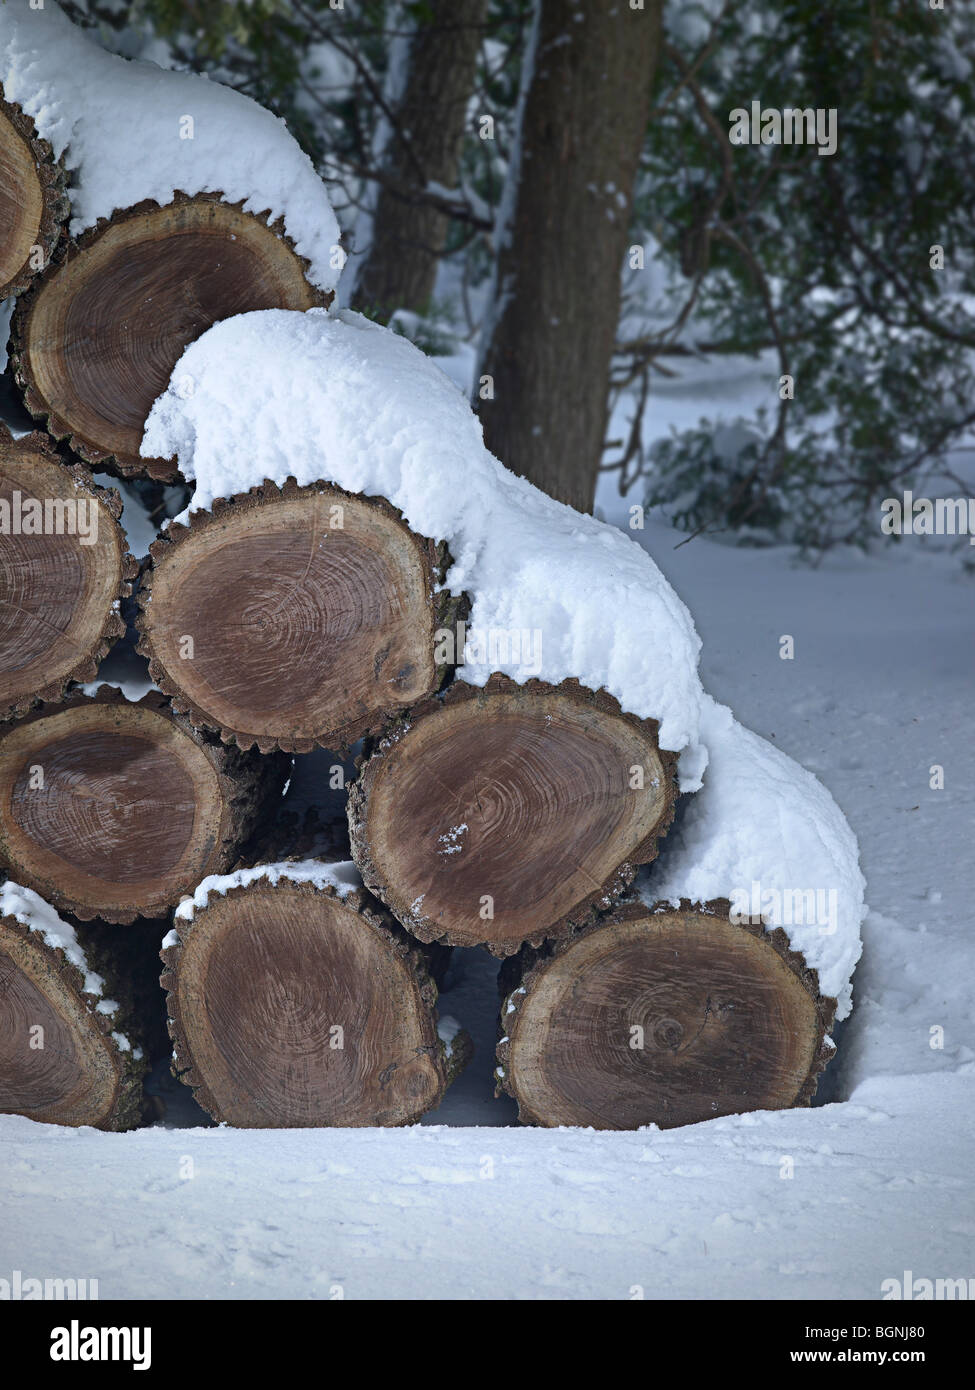 Cut Firewood Logs In The Snow, Pennsylvania, USA - Stock Image